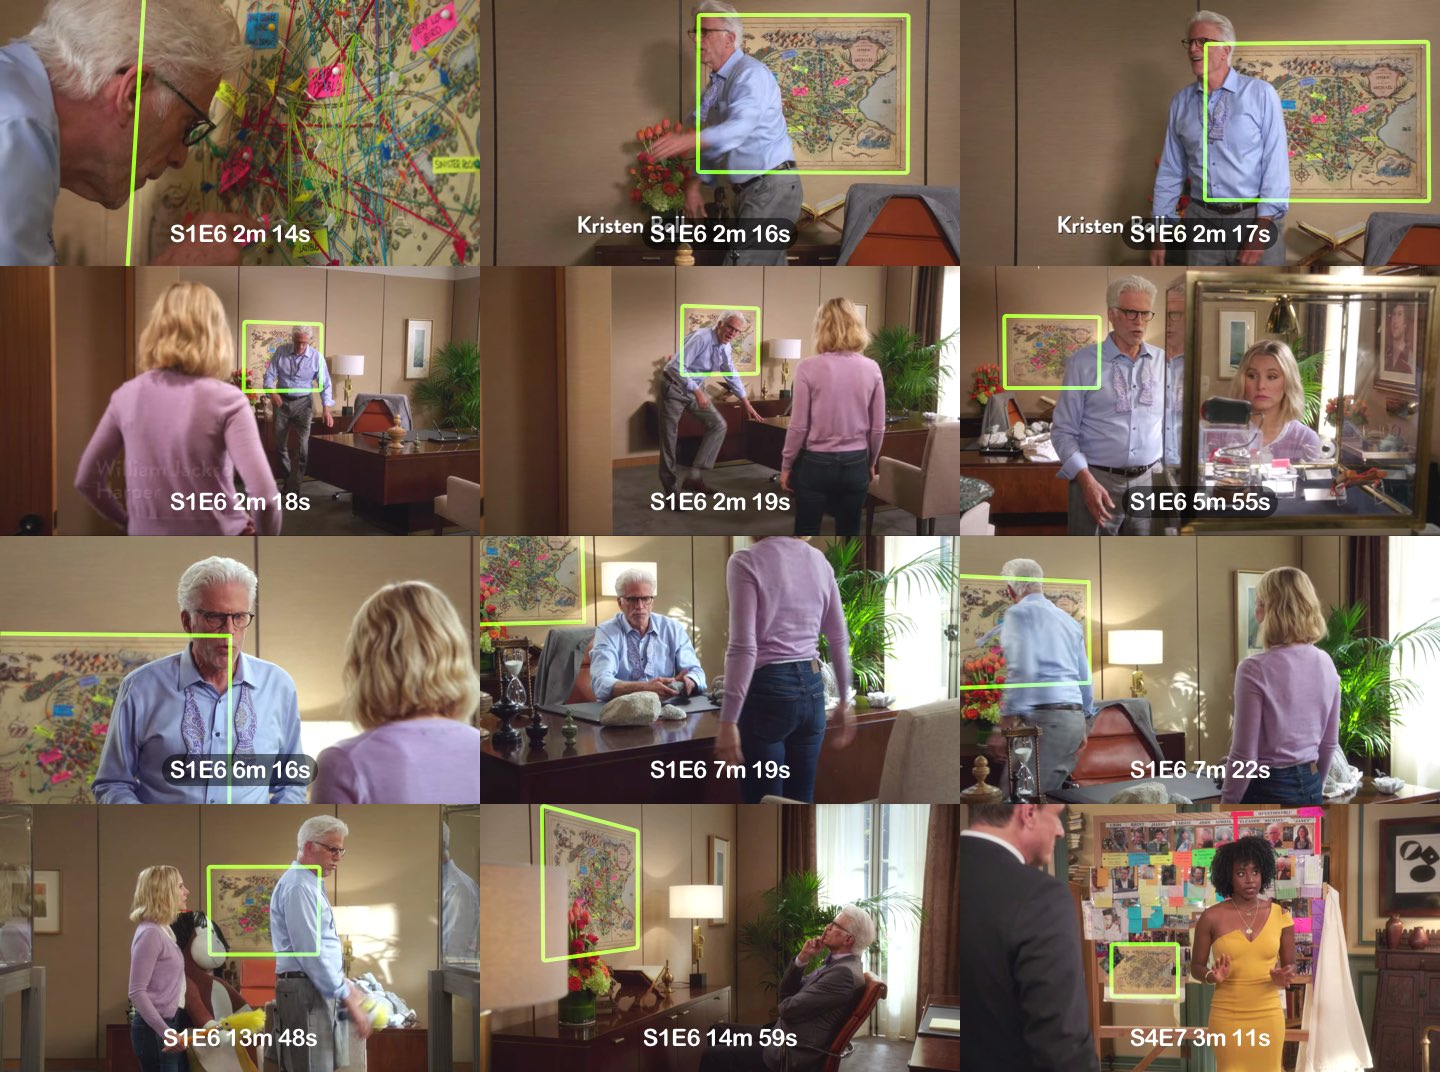 A 4x3 grid of screenshots from The Good Place at different time intervals that show the map. The map is highlighted.